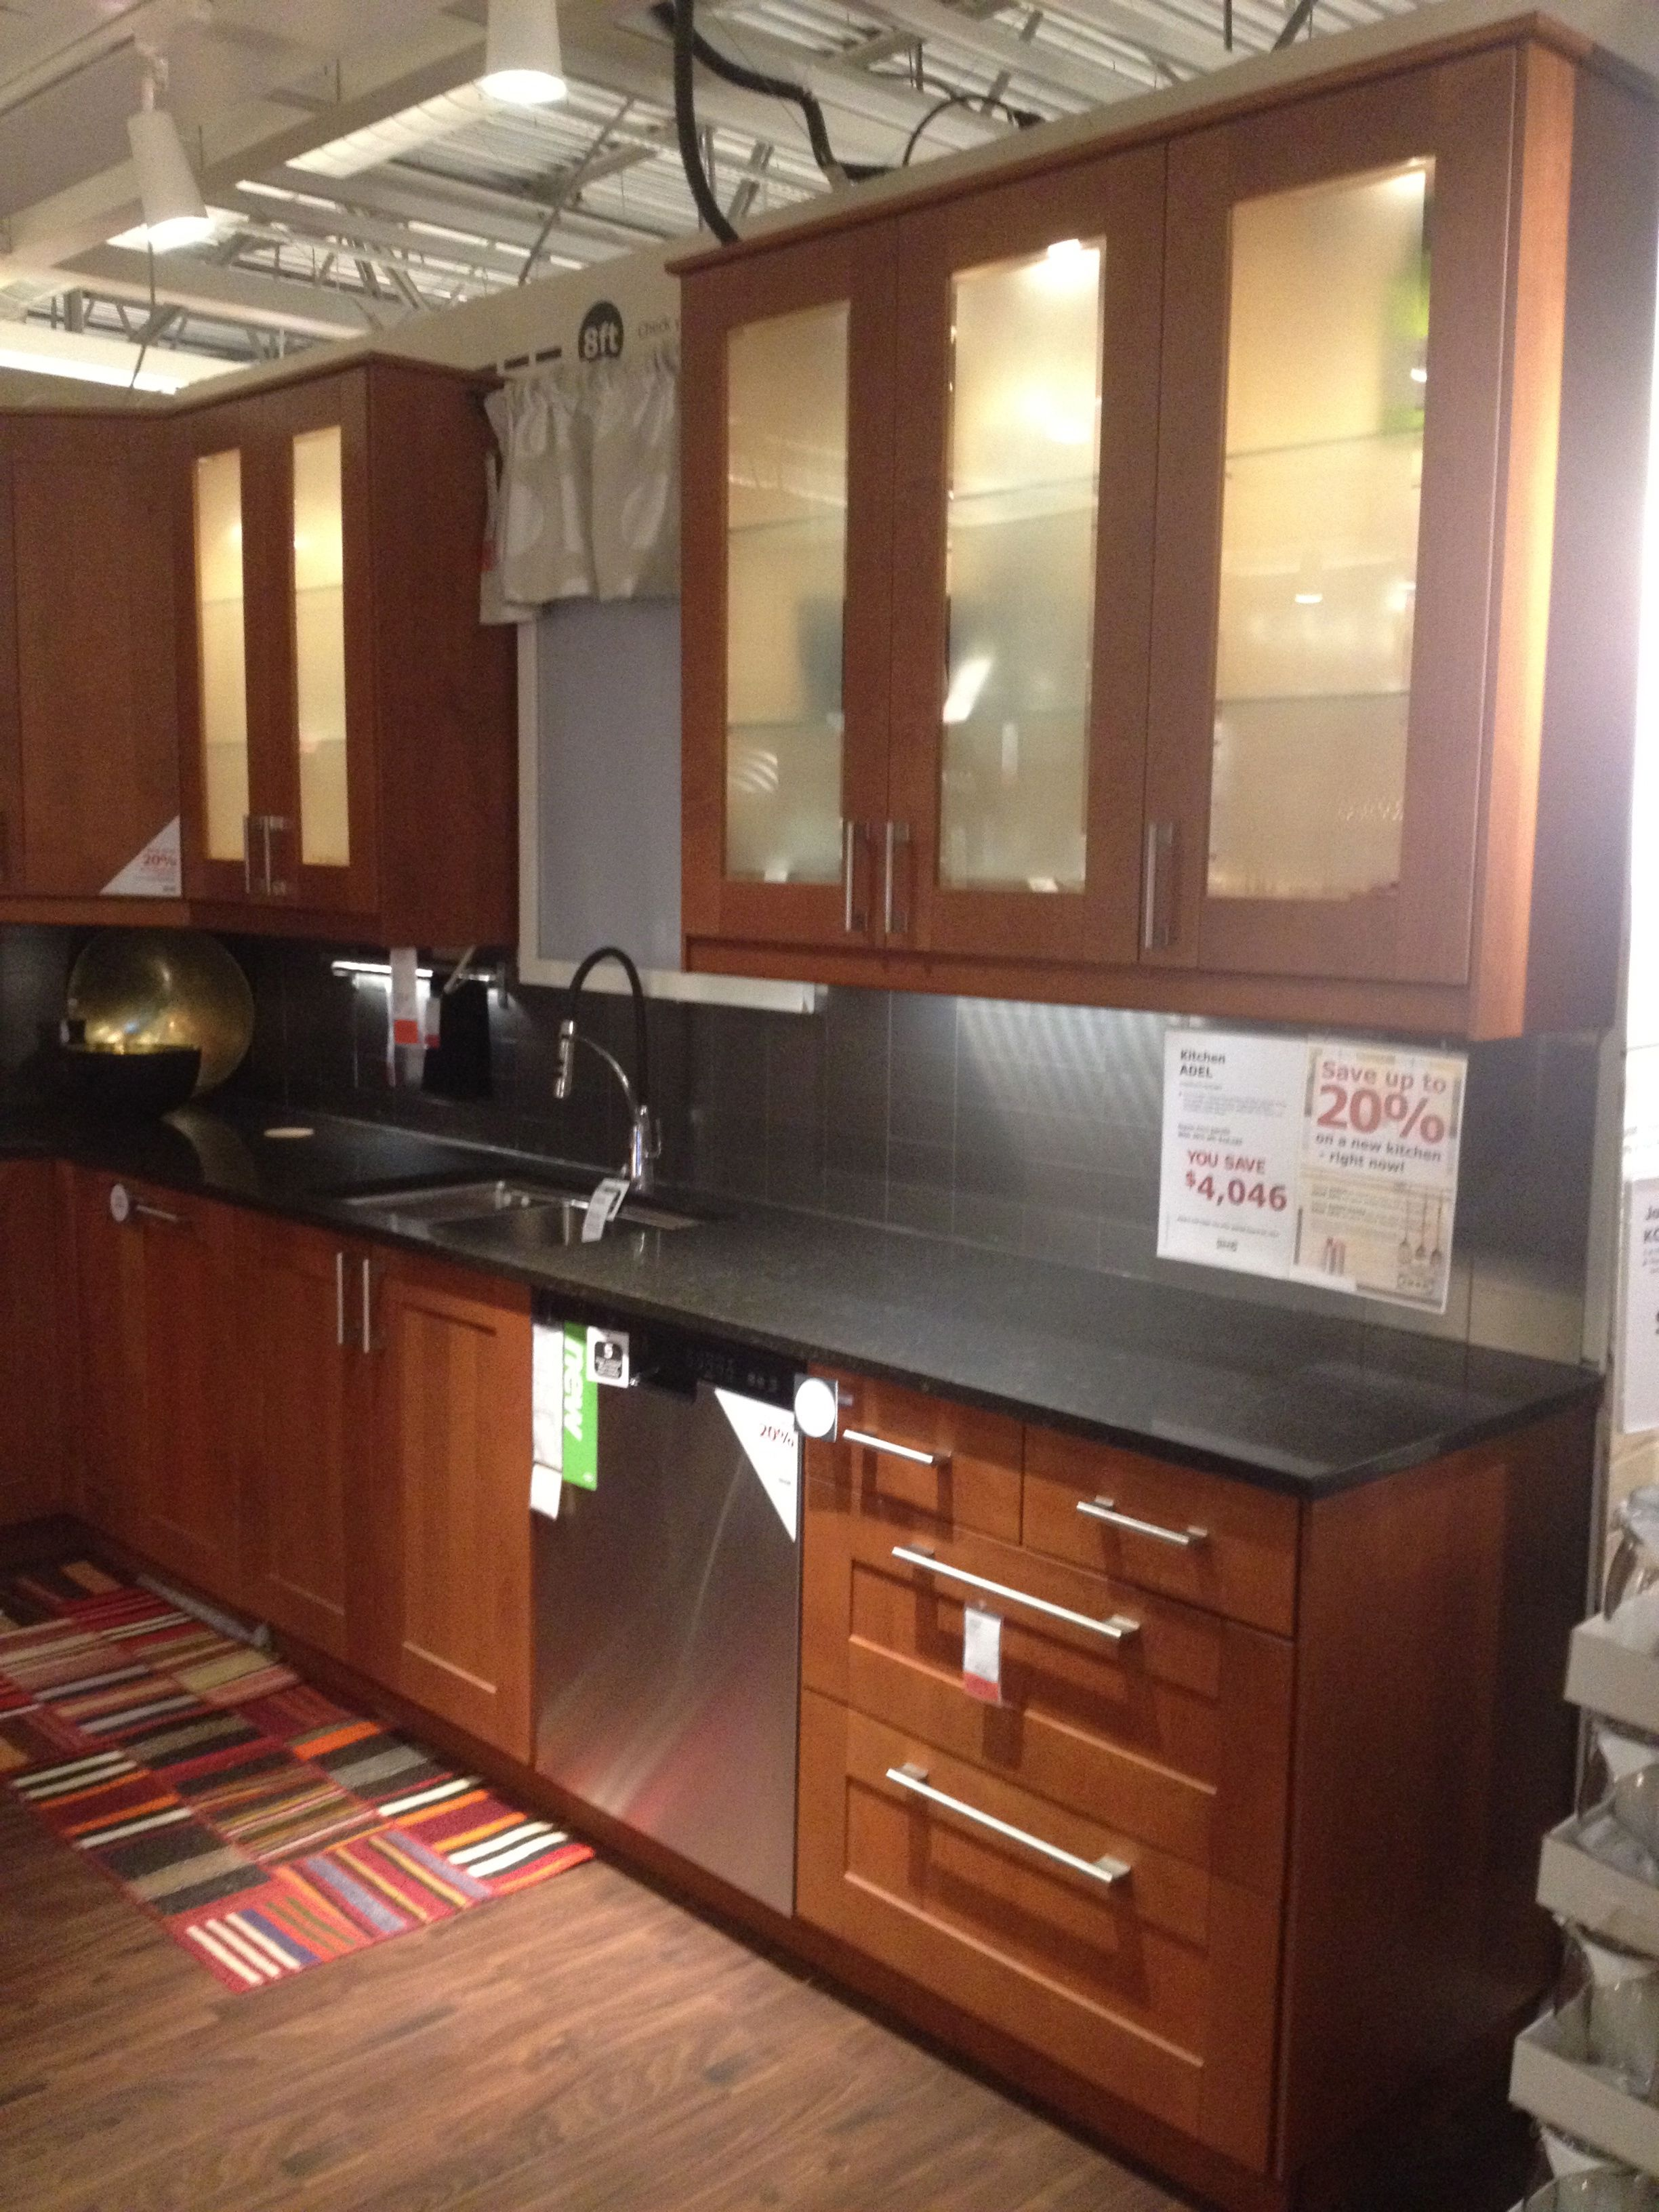 Ikea Red Wood Kitchen Cabinets Kitchen Cabinets Wood Kitchen Cabinets Kitchen